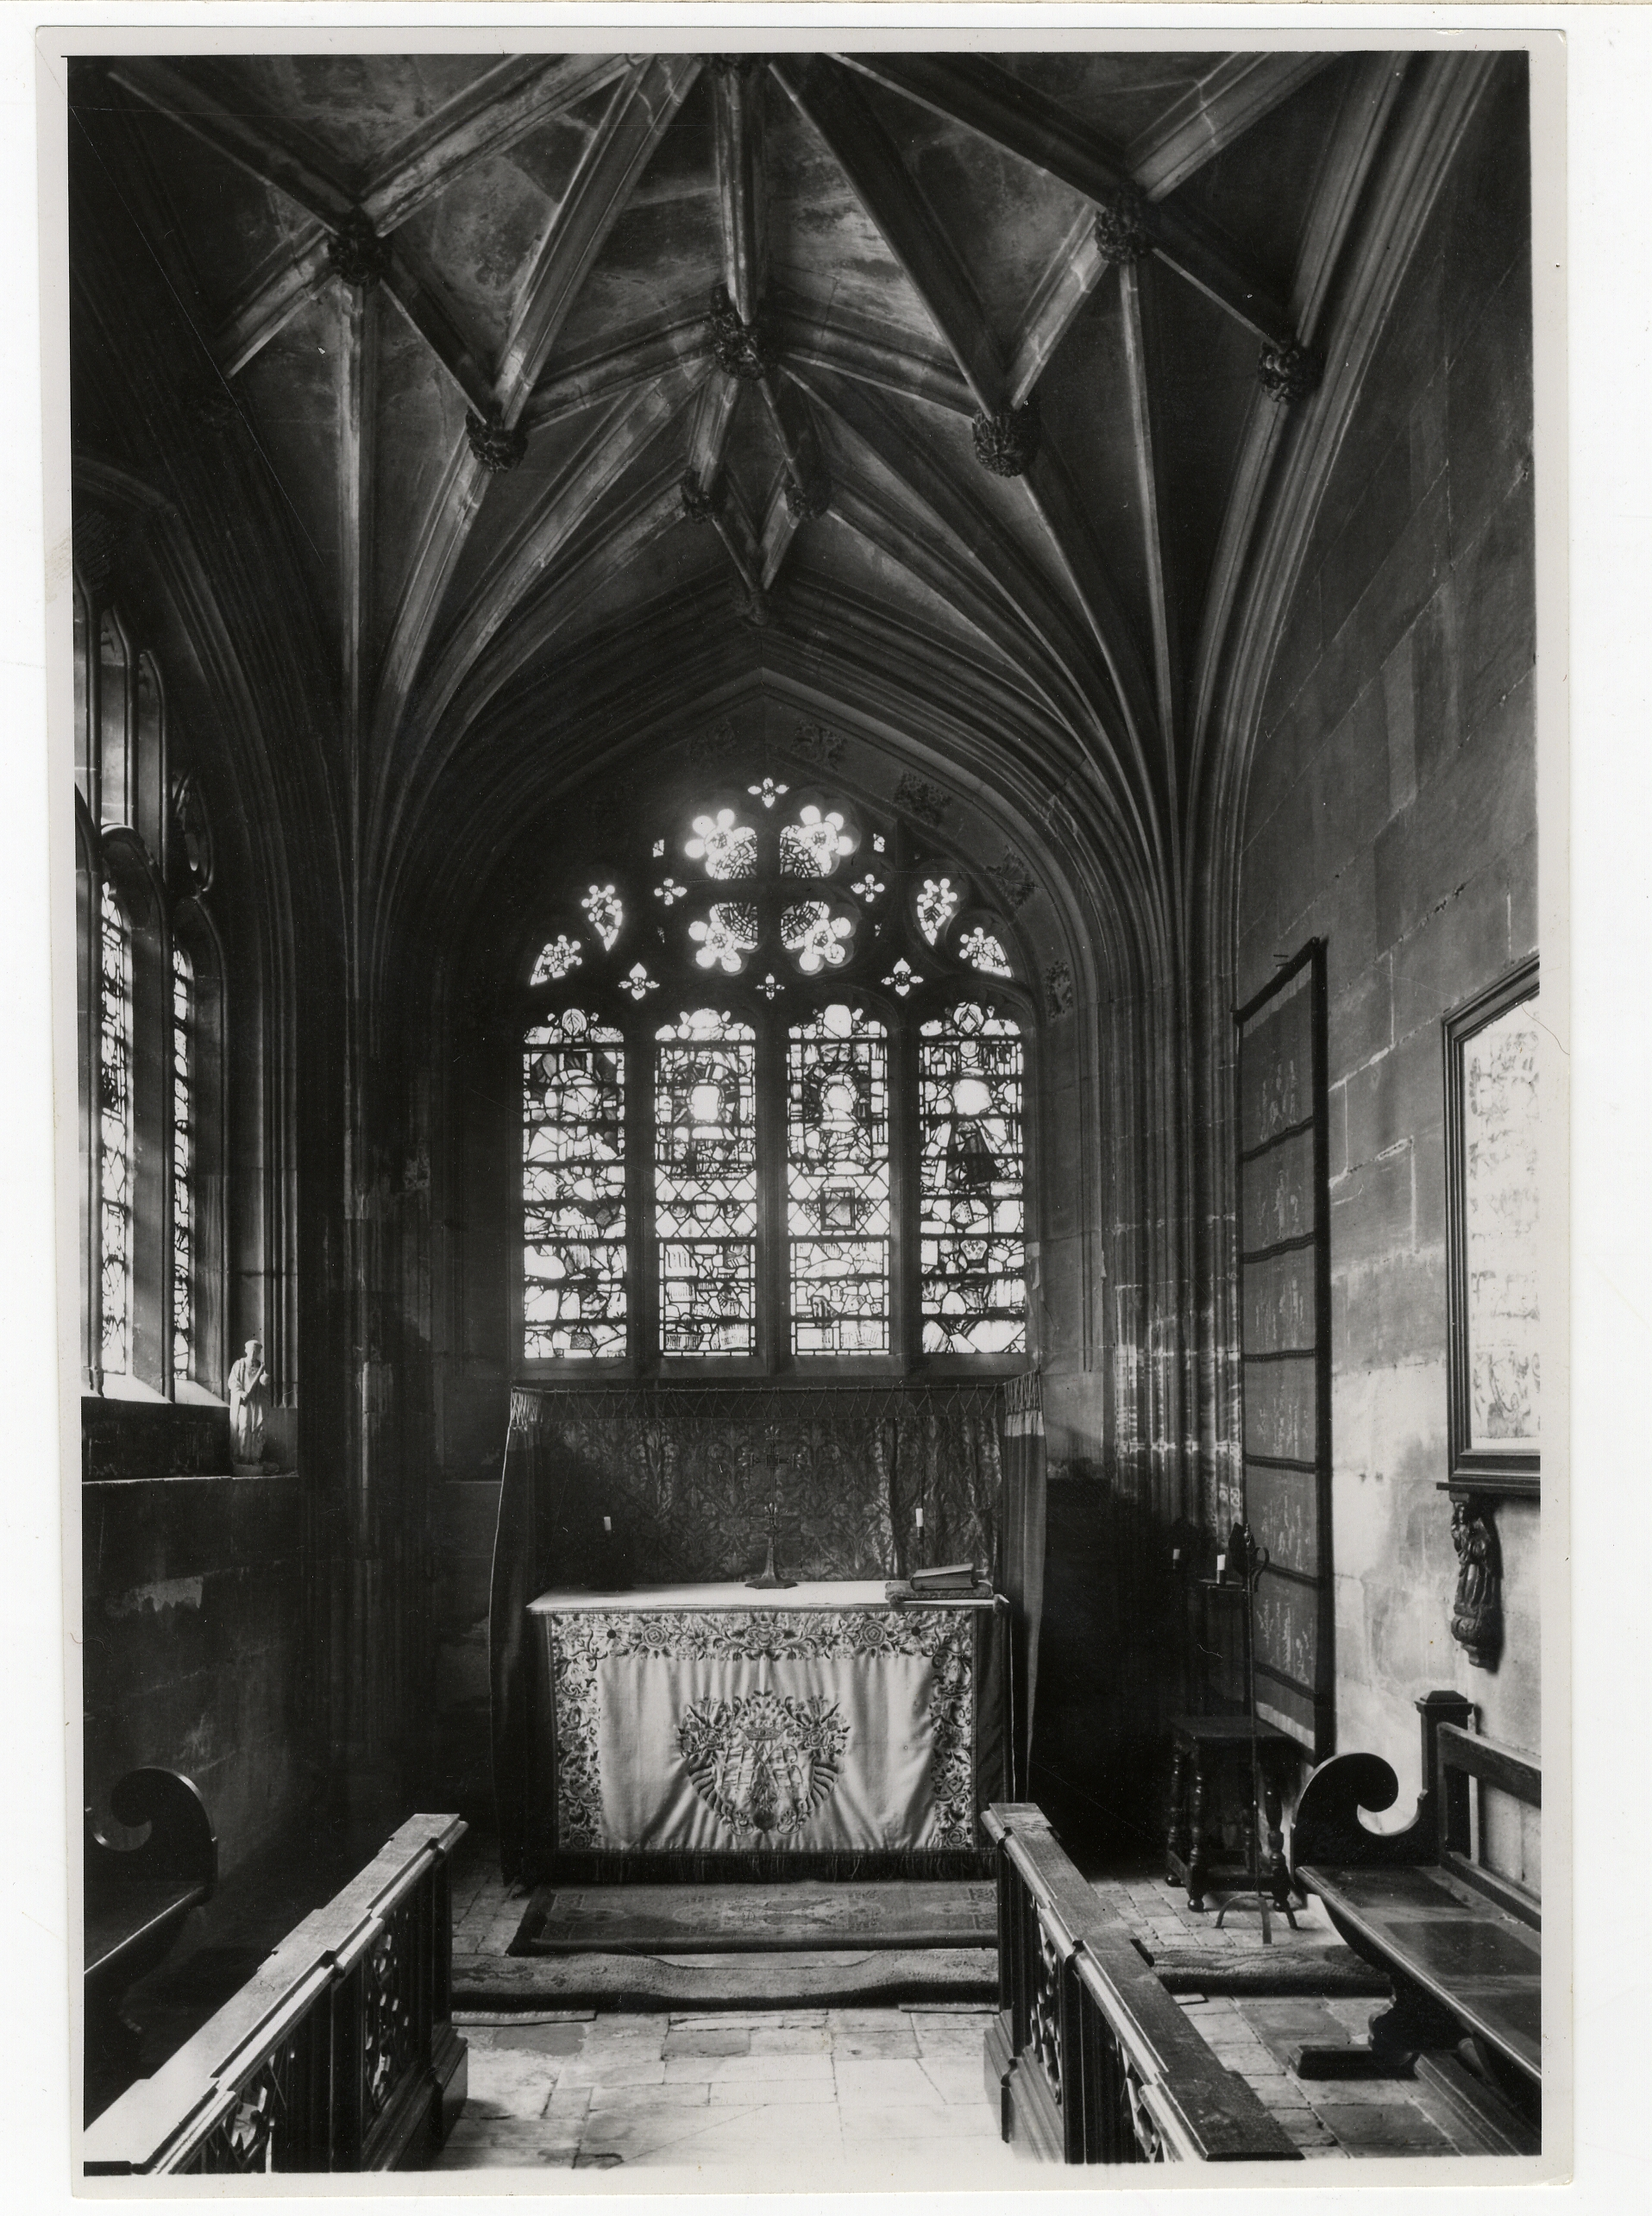 North-east side chapel, with lierne vault. [Coll-Ph-719]. This was the first part of the Chapel to be completed.